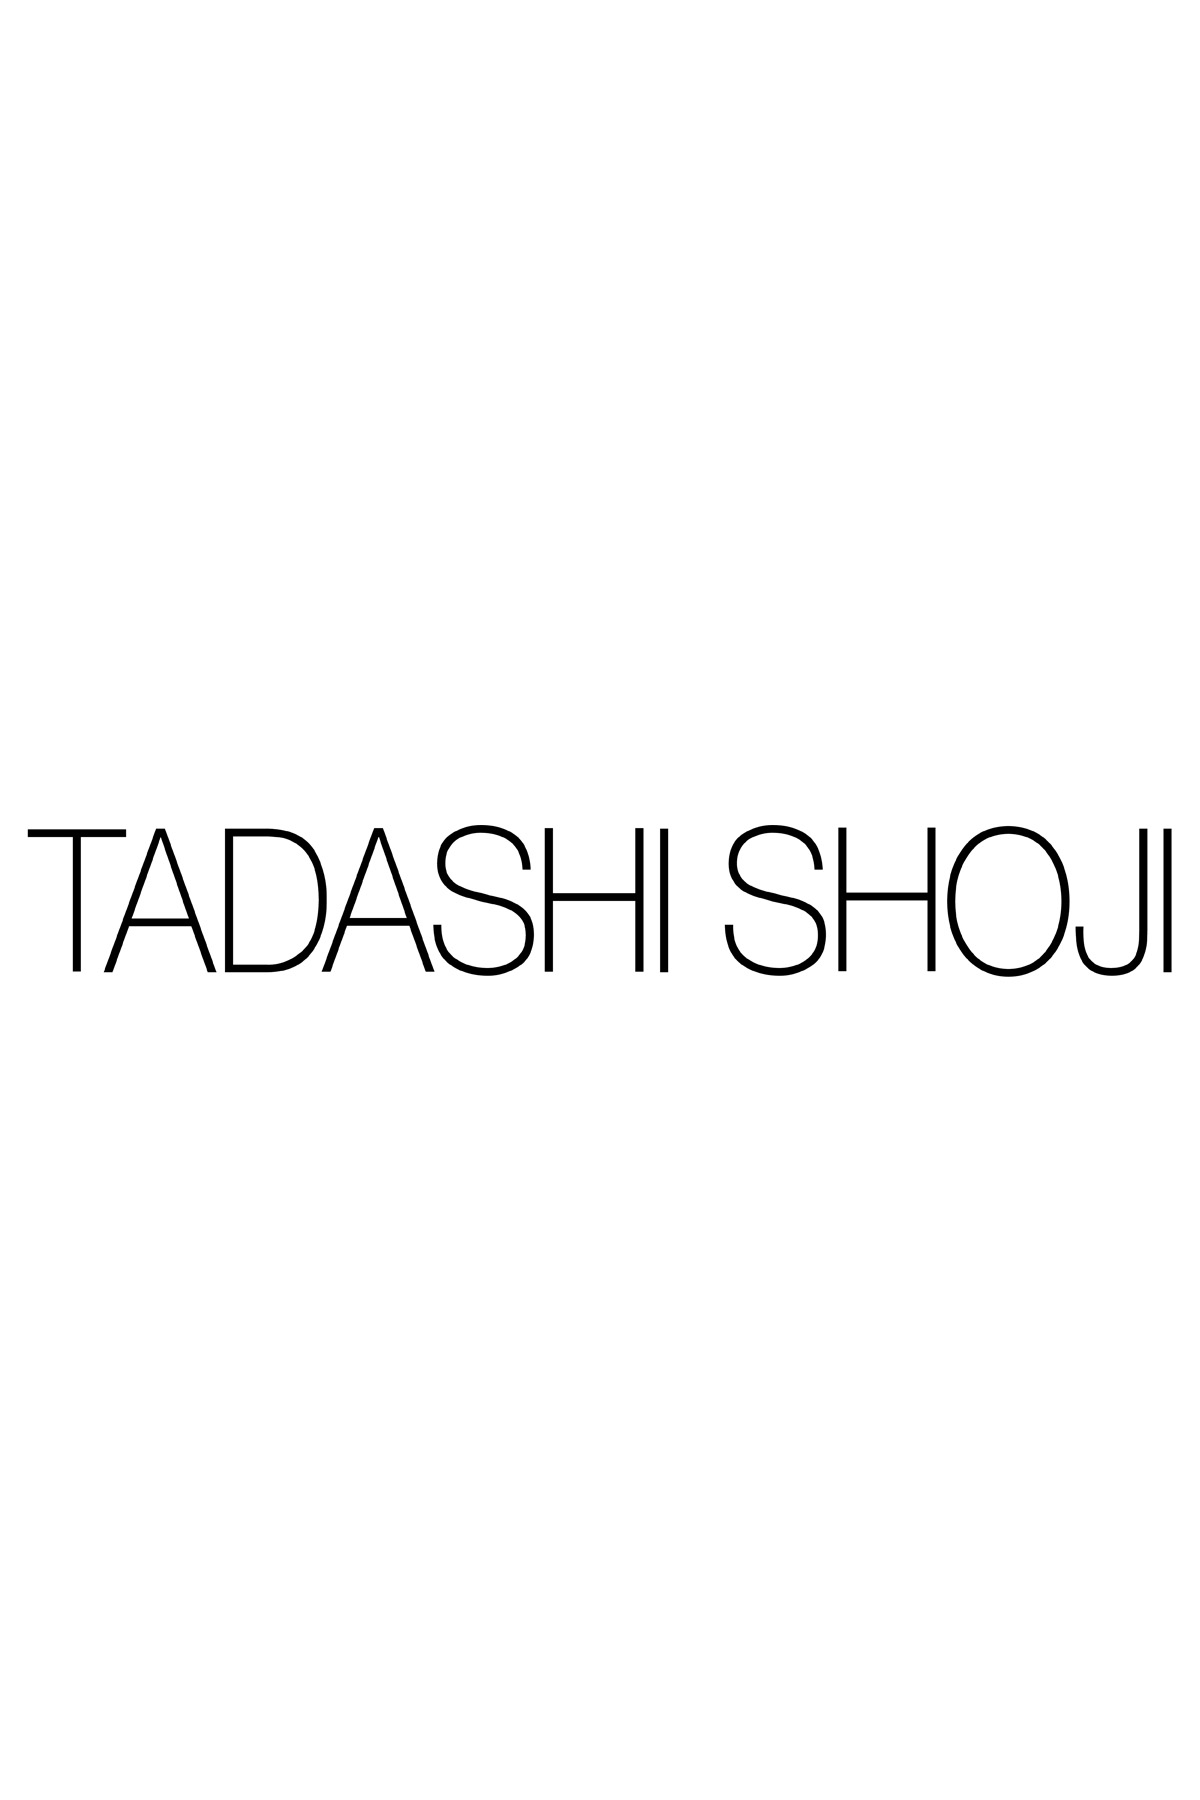 d2a3fcca5b Tadashi Dresses Plus Size - Holiday Dresses